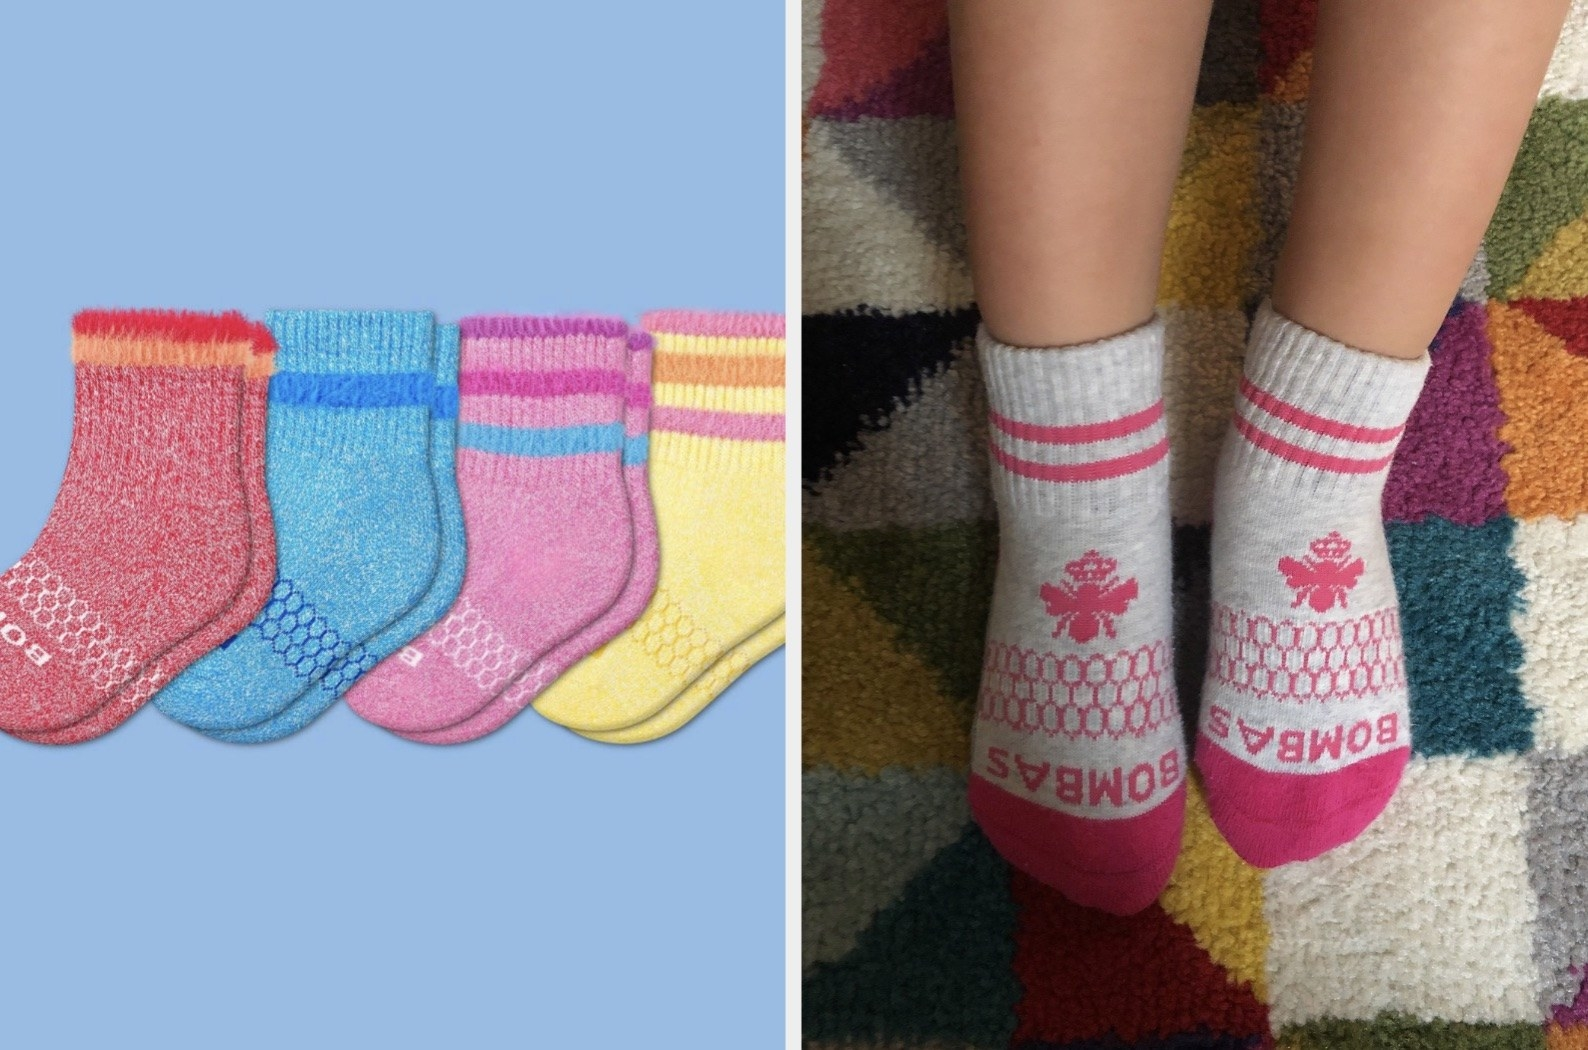 Four pairs of toddler socks in red, blue, pink, and yellow / The socks on toddler feet with a bee printed on top